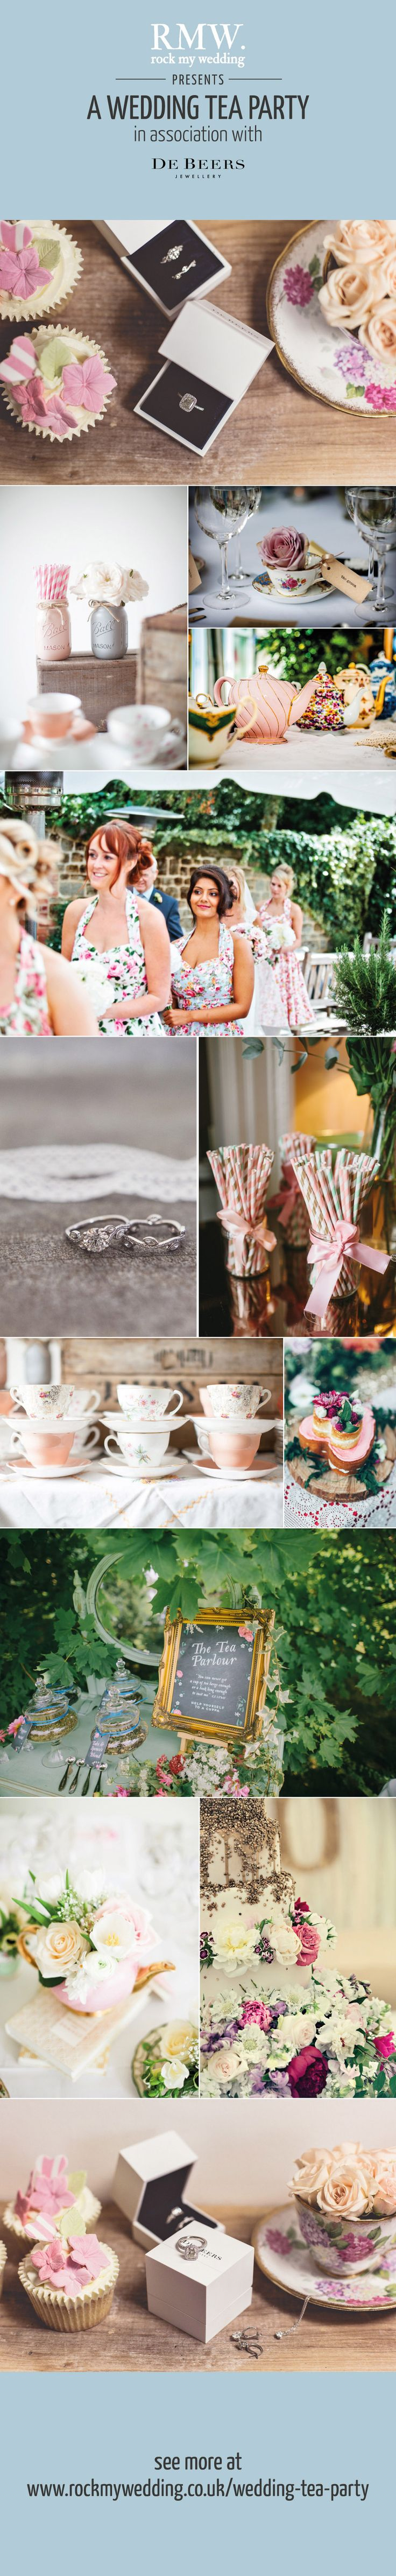 Afternoon Tea Wedding Inspiration by Rock My Wedding in association with De Beers | http://www.rockmywedding.co.uk/wedding-tea-party/